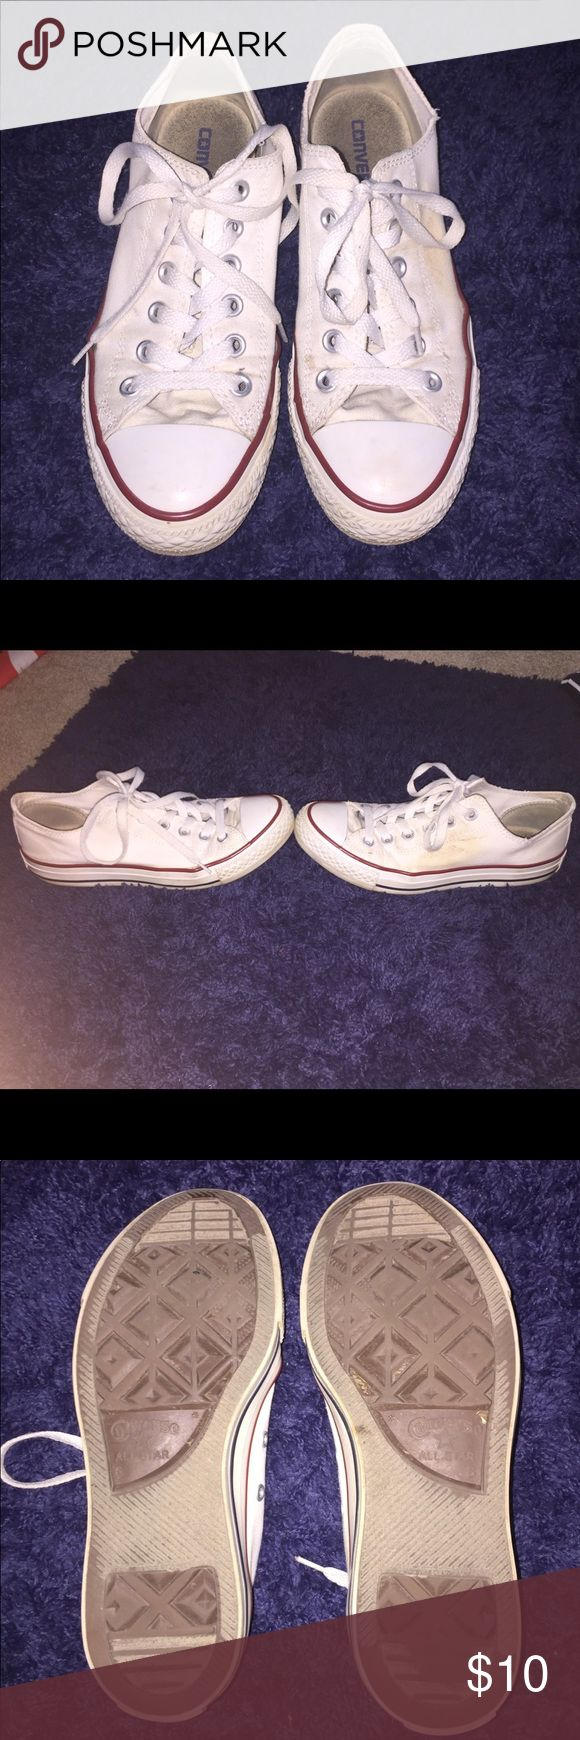 White low top converse USED condition. Need to be cleaned. The sides are separating. Men's size 6/ size women's 8 Converse Shoes Sneakers